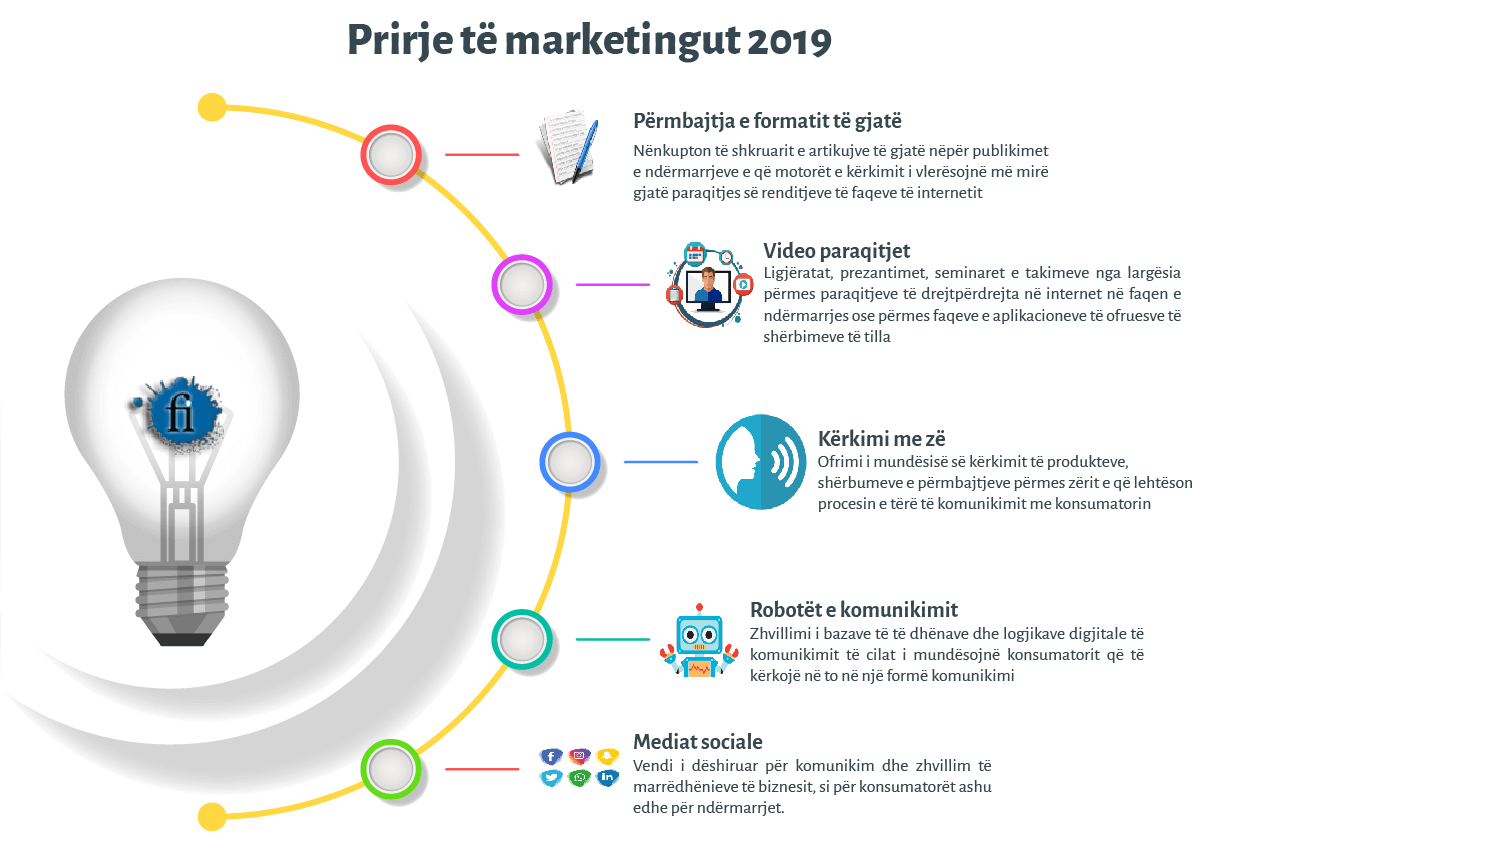 prirjet e marketingut 2019